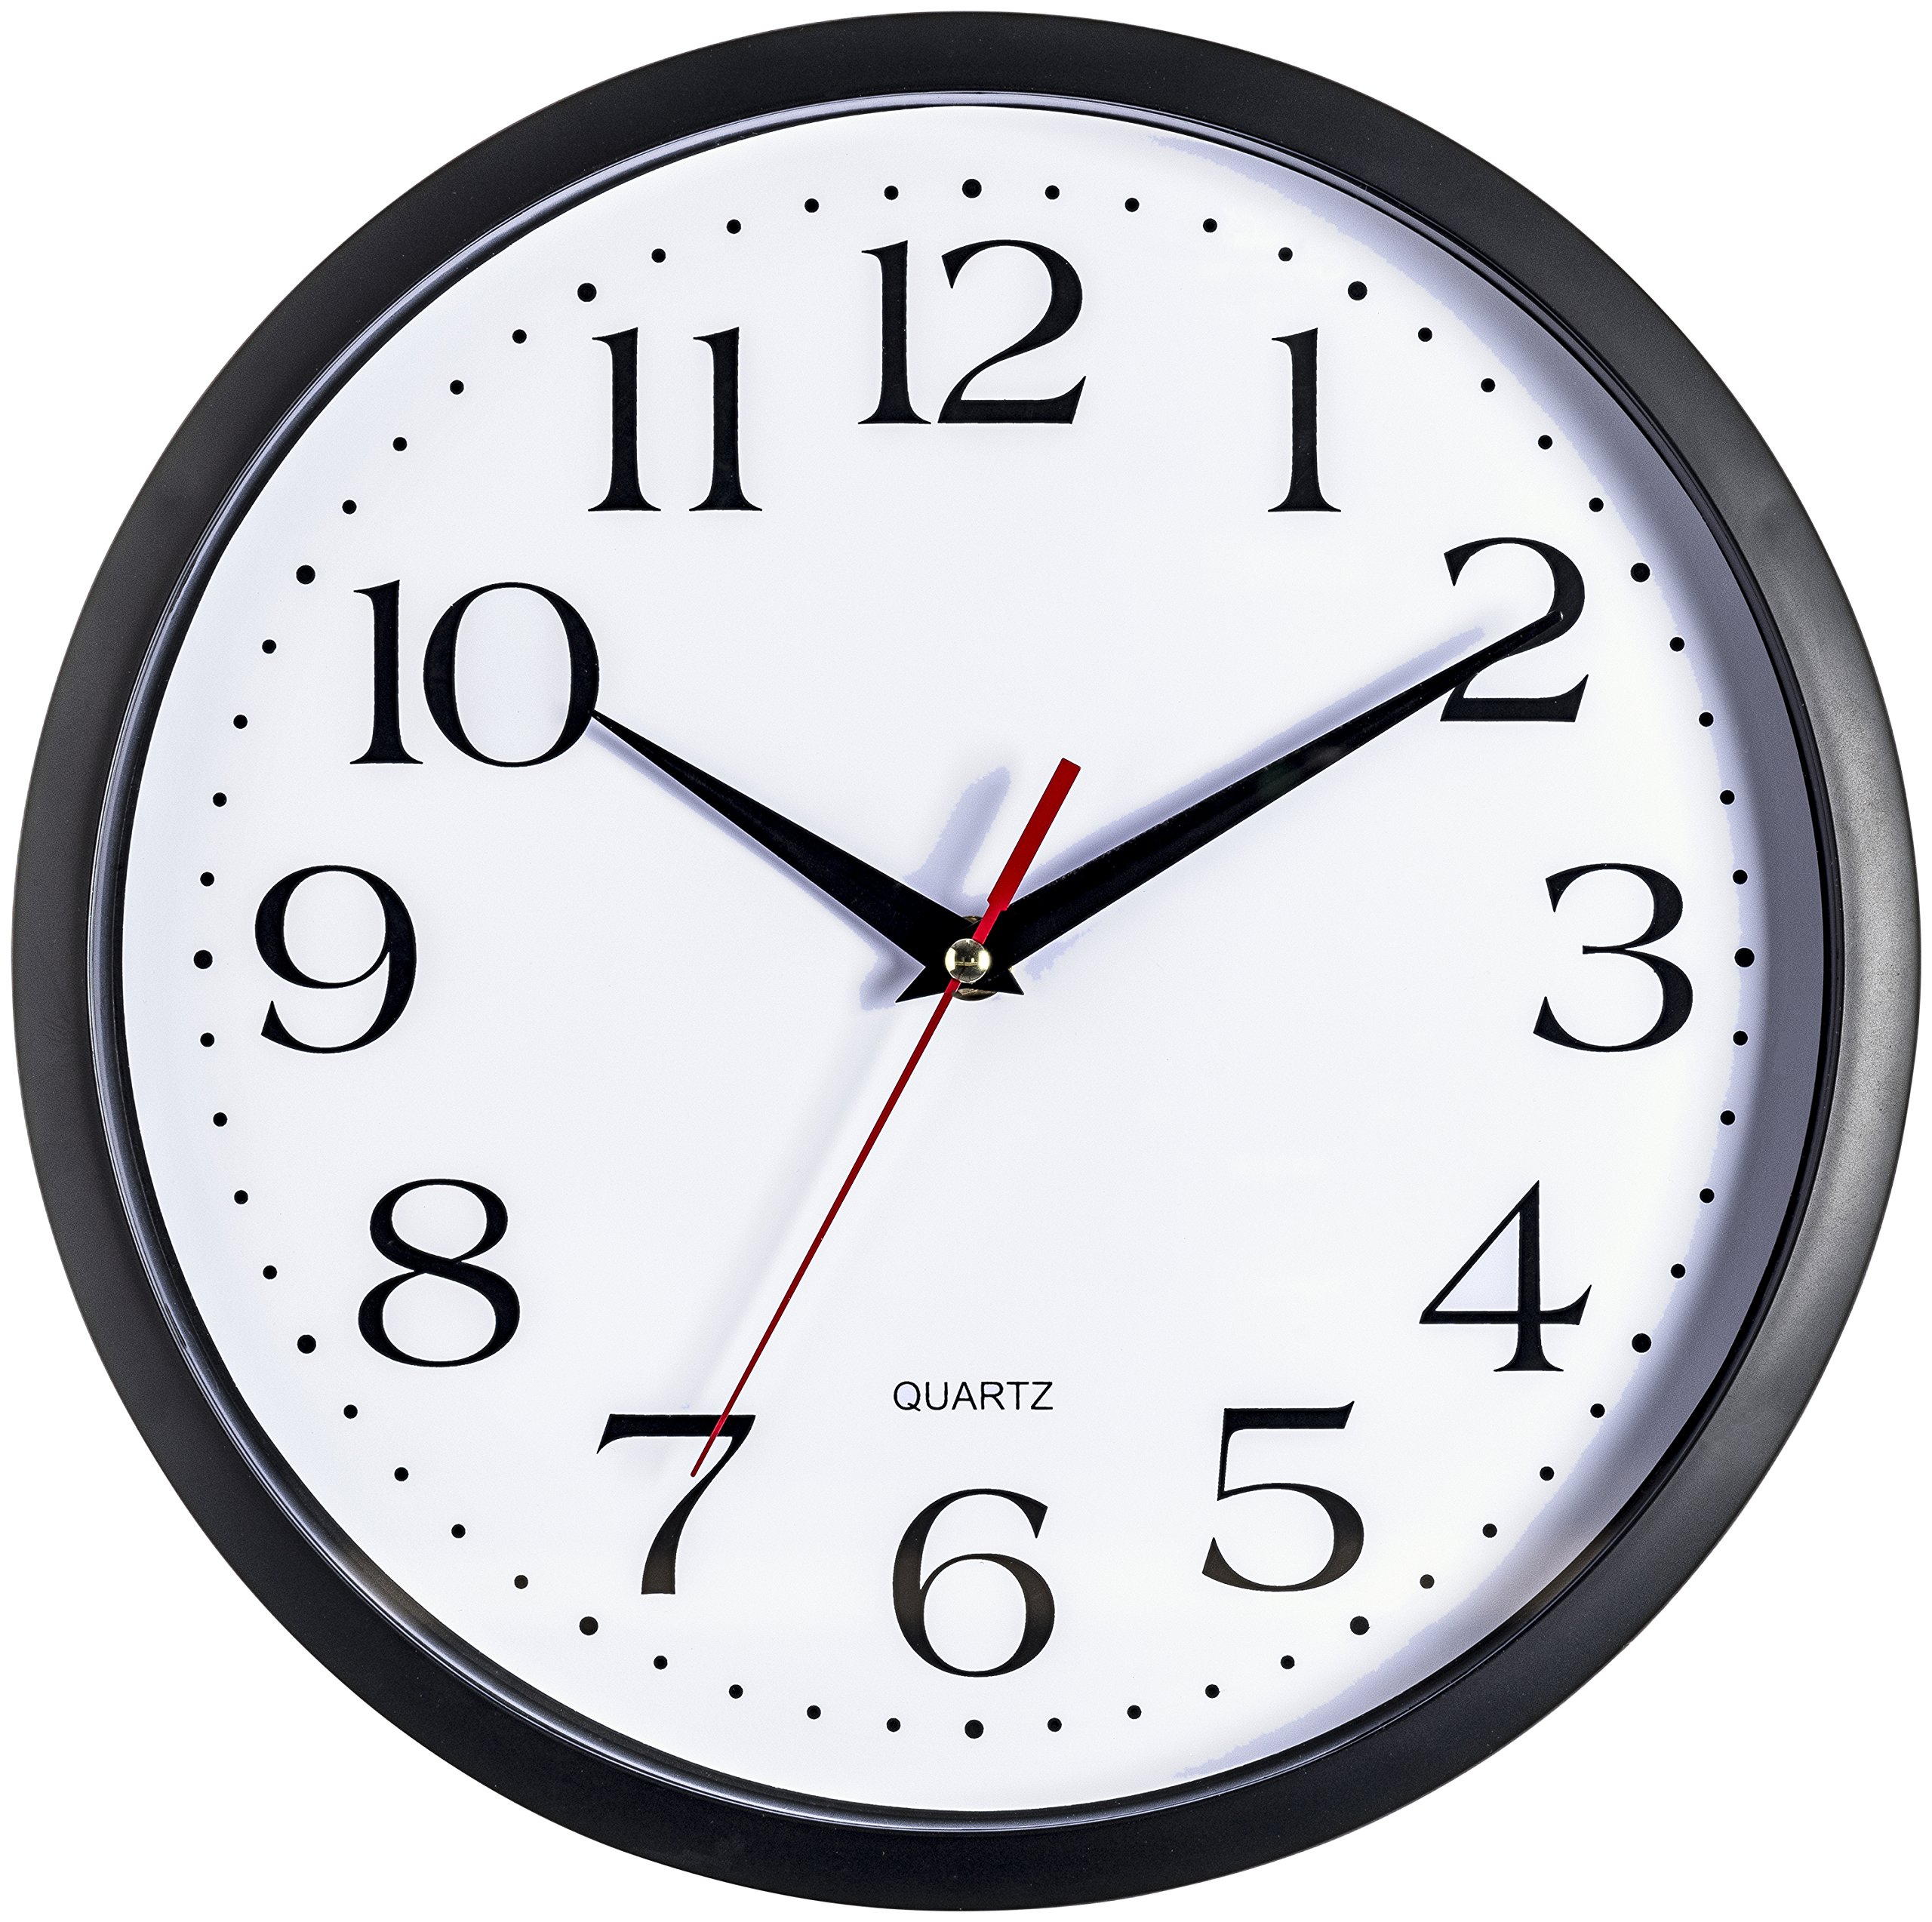 Bernhard Products Black Wall Clock, Silent Non Ticking - 12 Inch Quality Quartz Battery Operated Round Easy to Read Home/Office/School Clock Sweep Movement by Bernhard Products